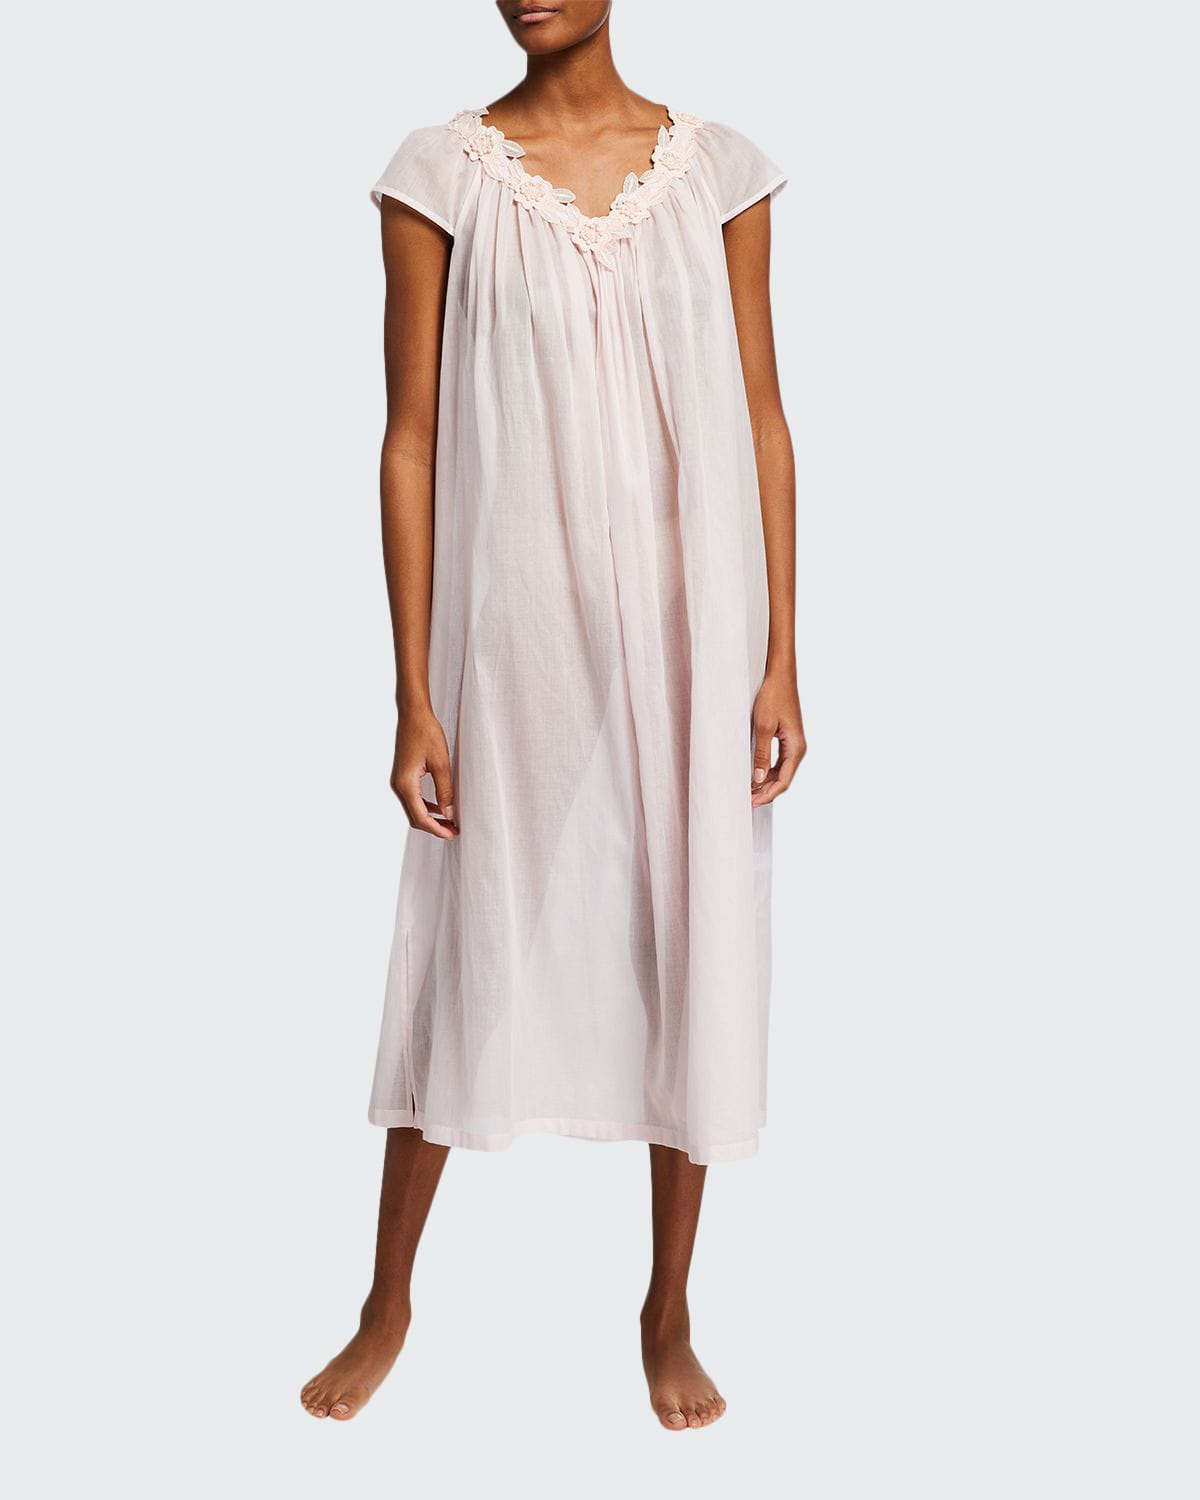 Vicky 2 Cap-Sleeve Long Nightgown